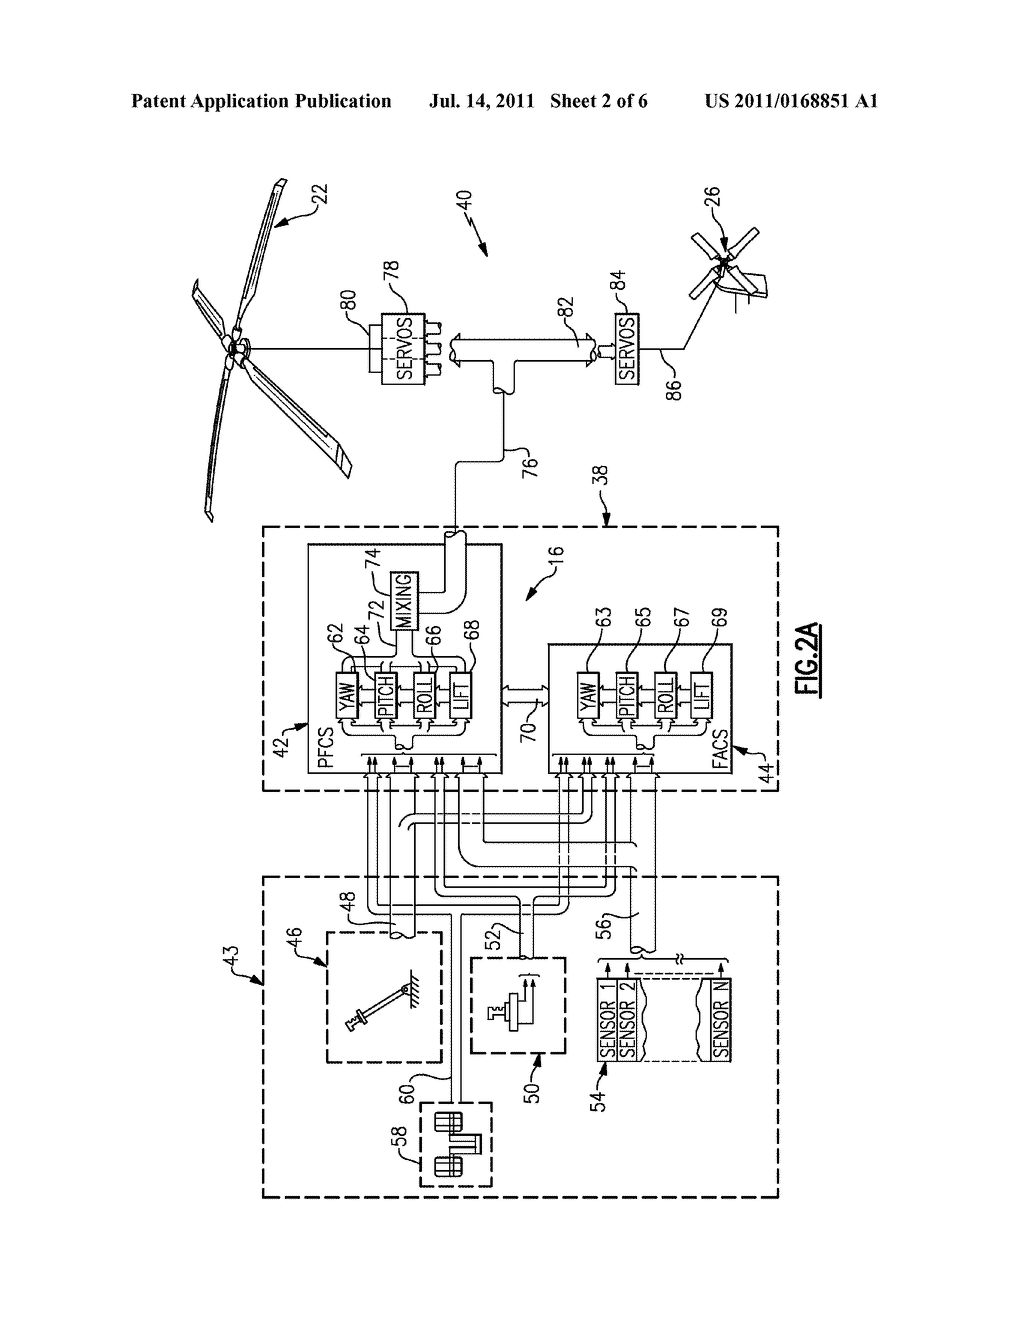 AUTOMATIC TRIM SYSTEM FOR FLY-BY-WIRE AIRCRAFT WITH UNIQUE TRIM ...